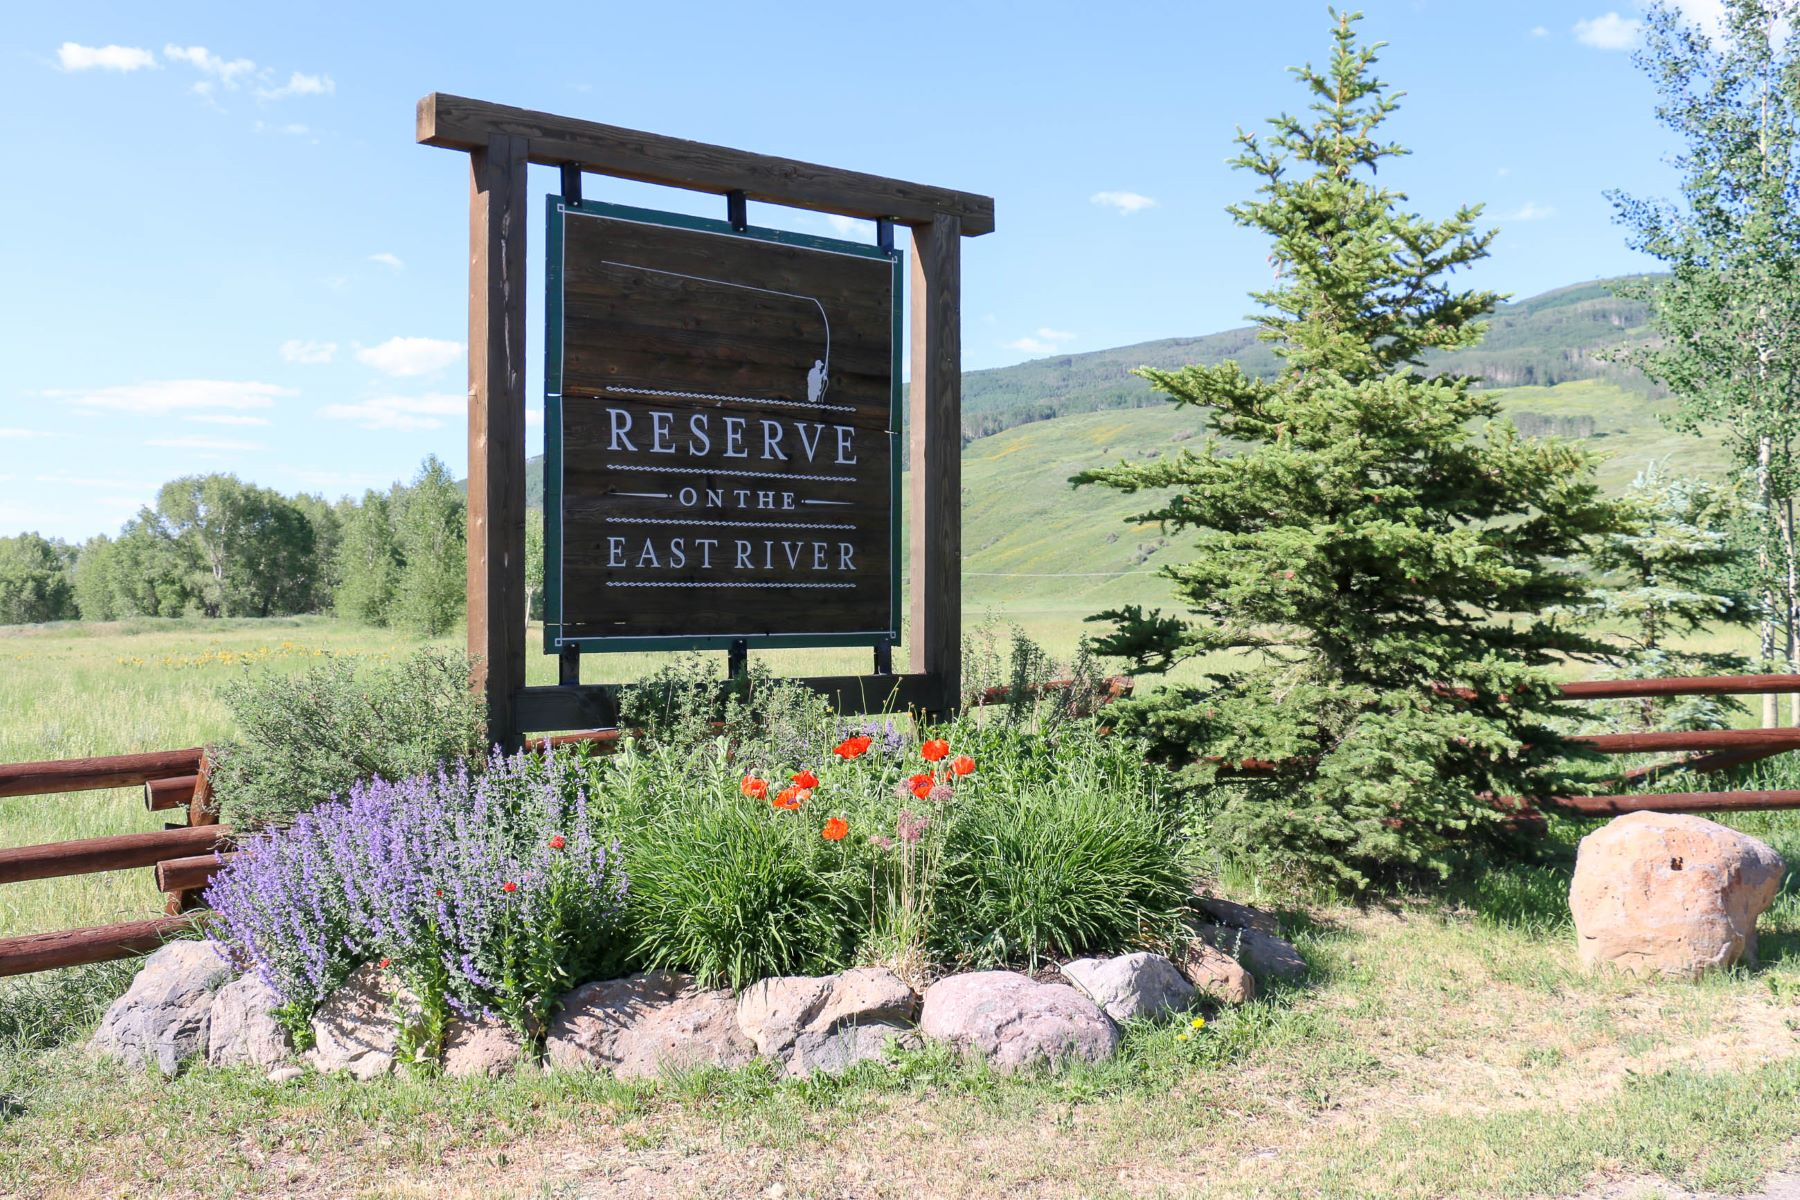 Land for Sale at Reserve on the East River 25 Wapiti Trail Crested Butte, Colorado, 81224 United States